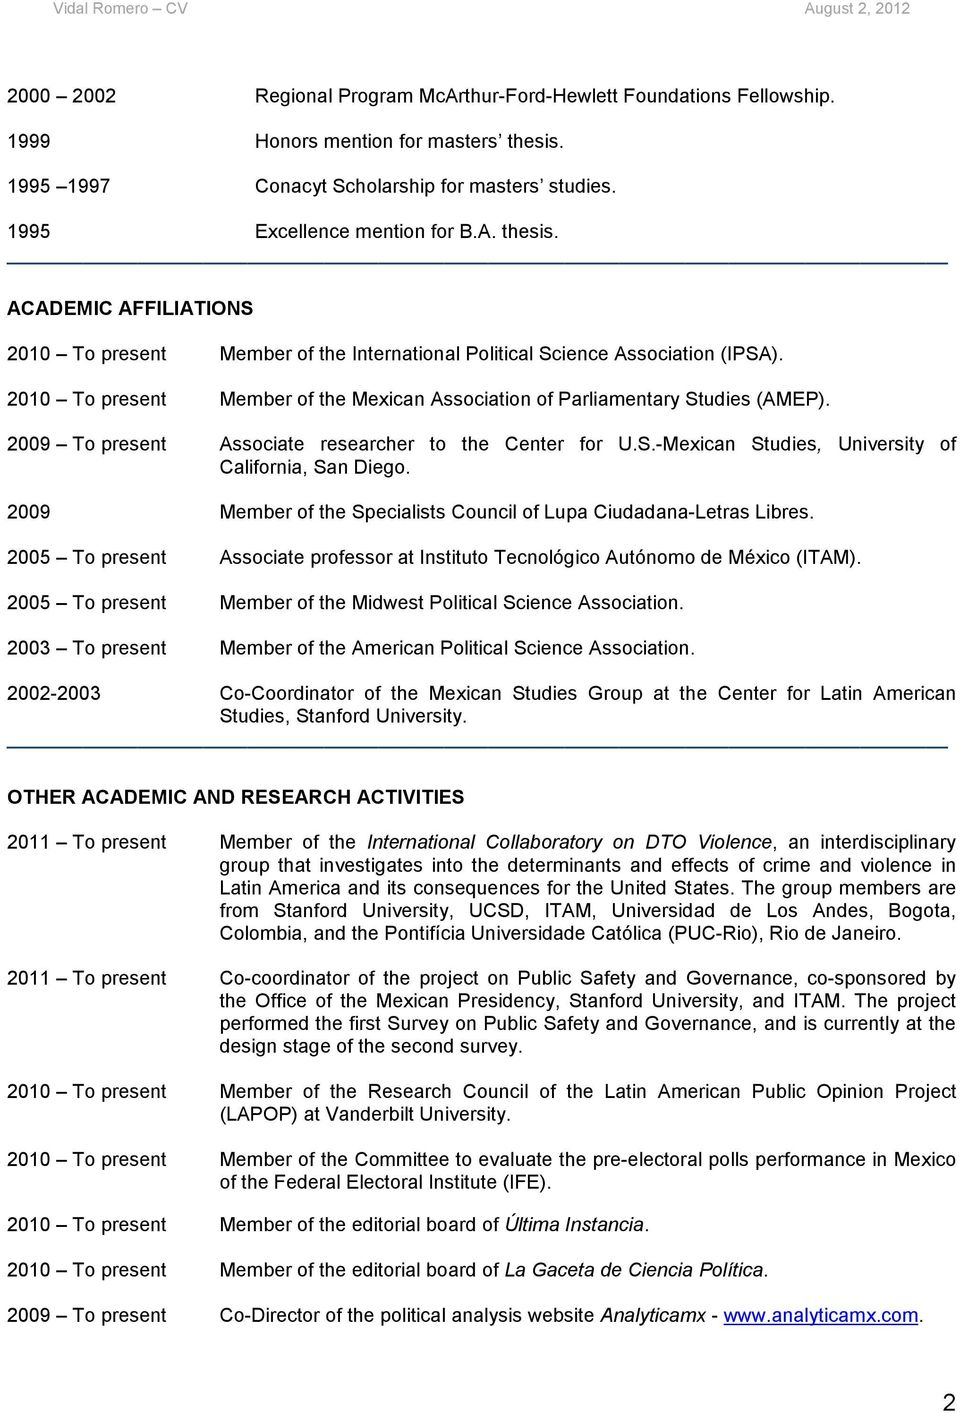 2010 To present Member of the Mexican Association of Parliamentary Studies (AMEP). 2009 To present Associate researcher to the Center for U.S.-Mexican Studies, University of California, San Diego.